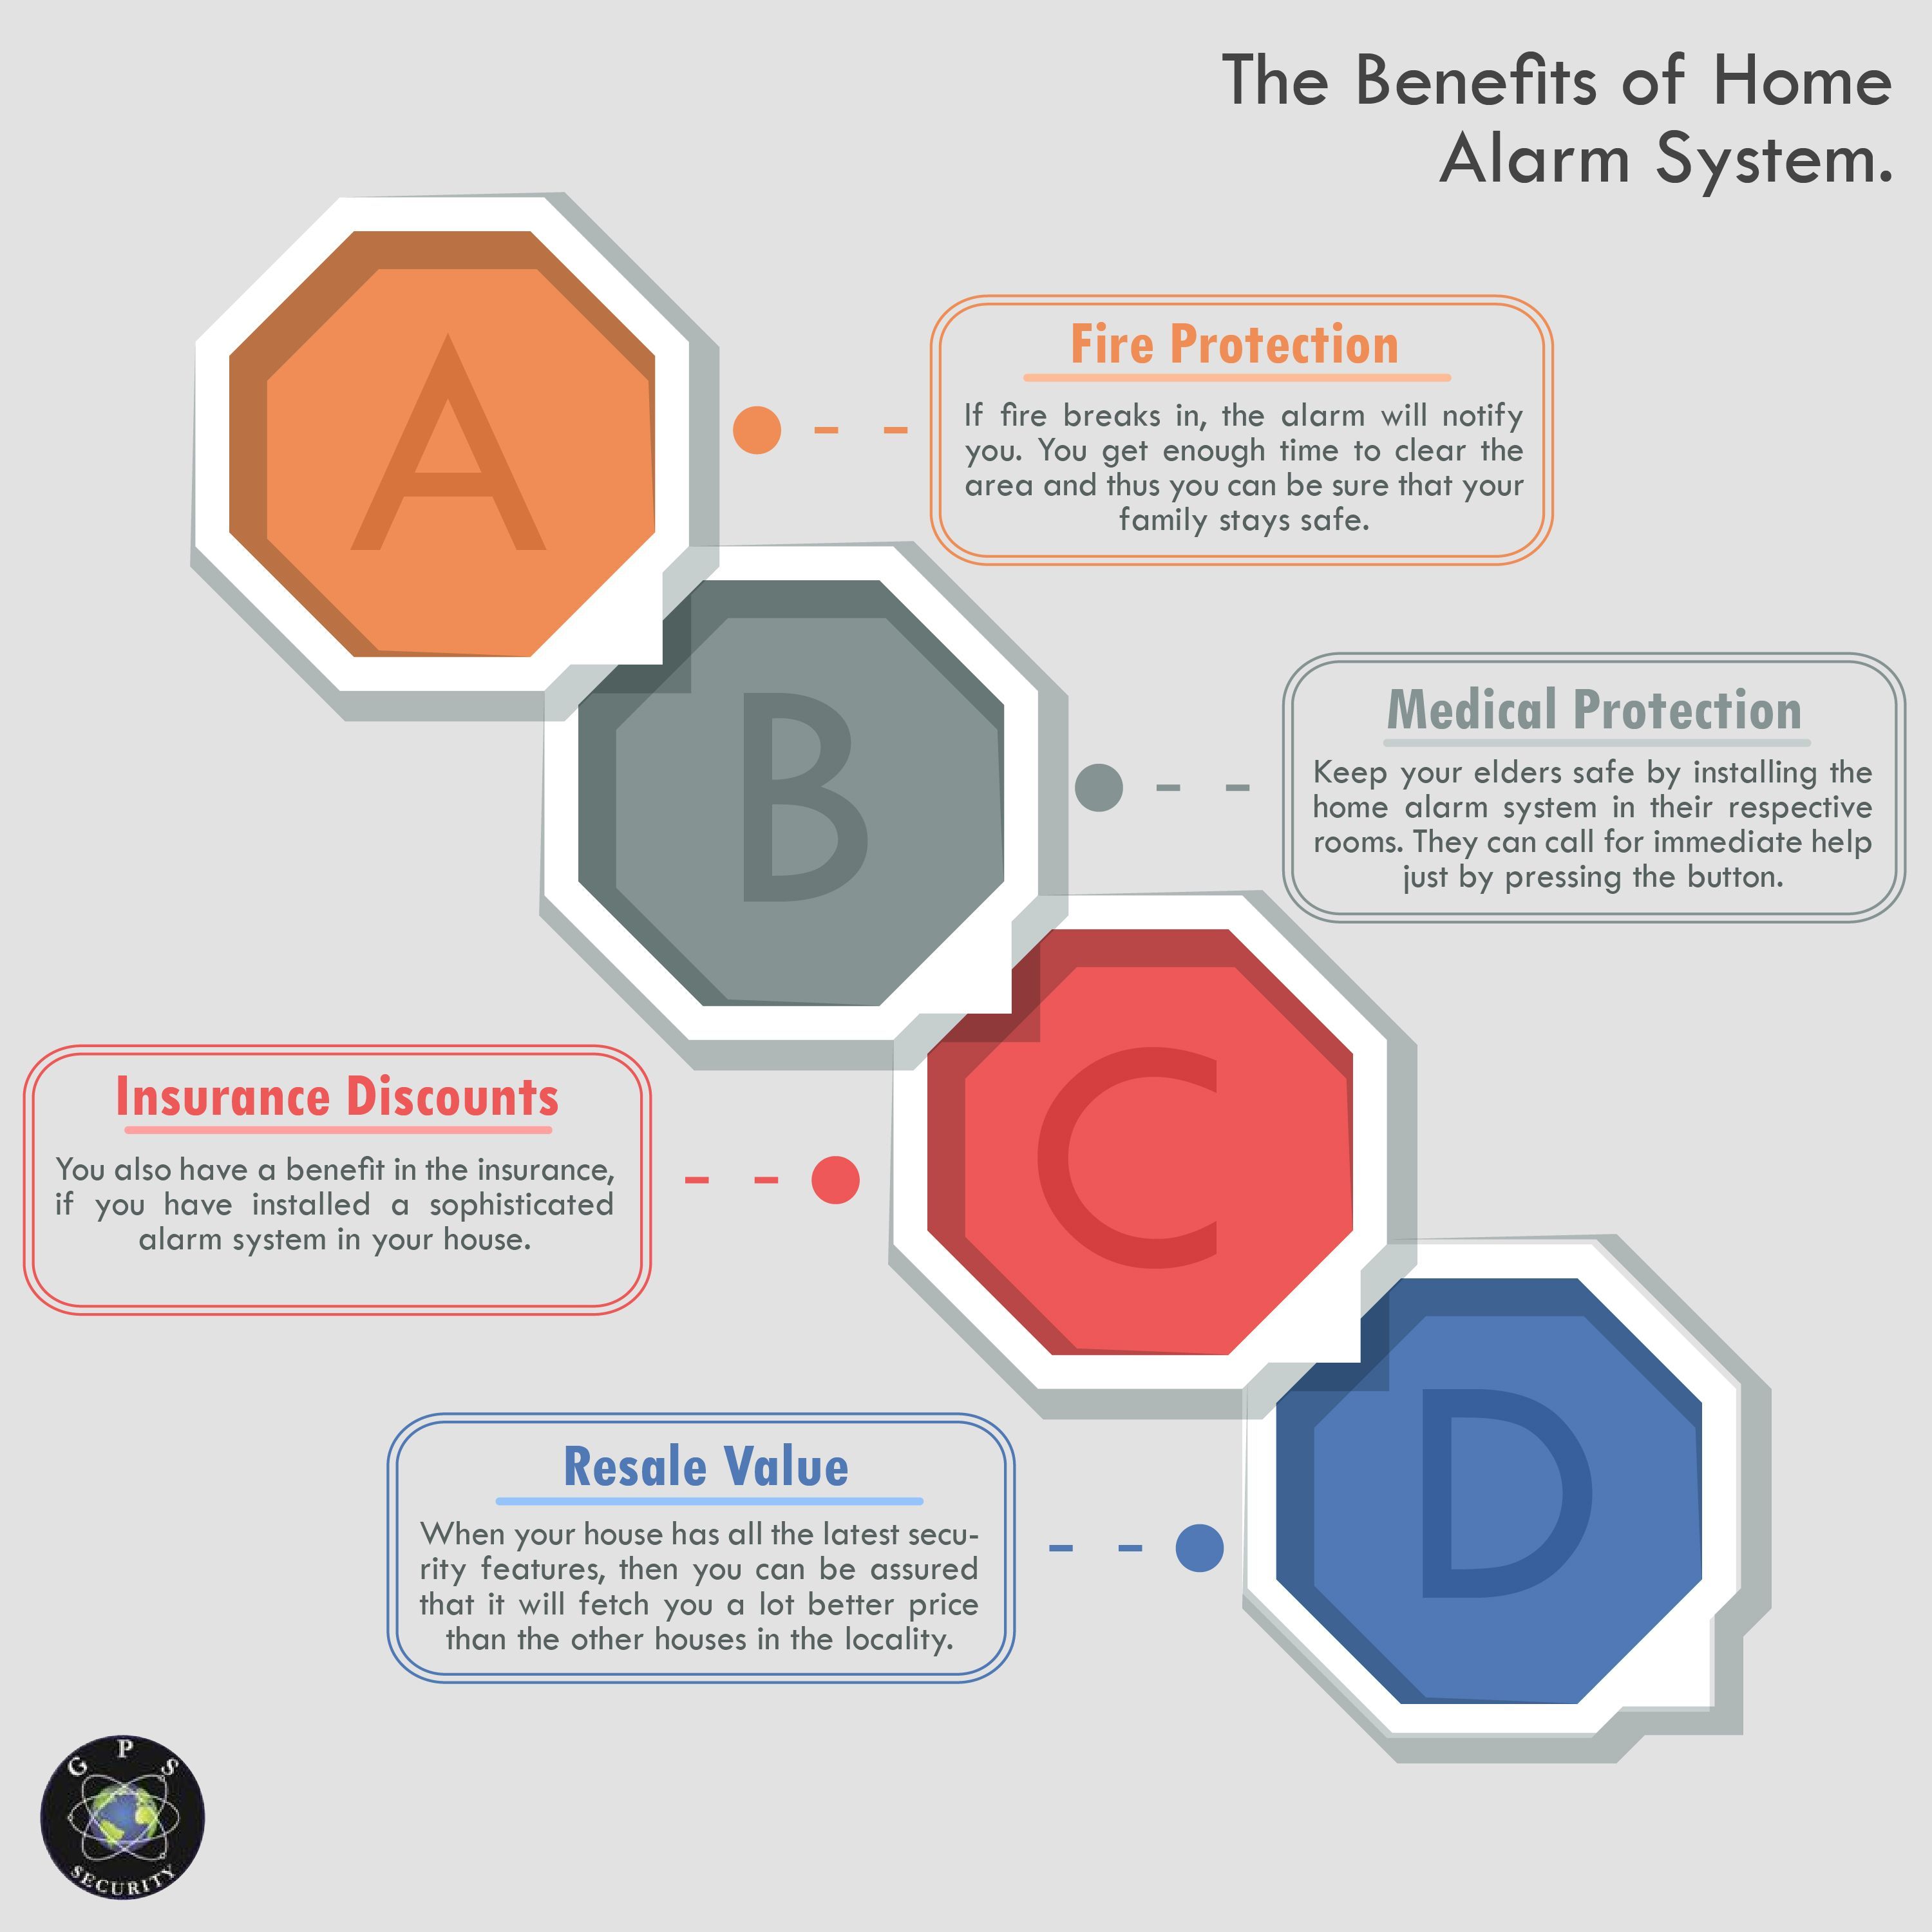 The Benefits Of Home Alarm System In Your Home Alarm Systems For